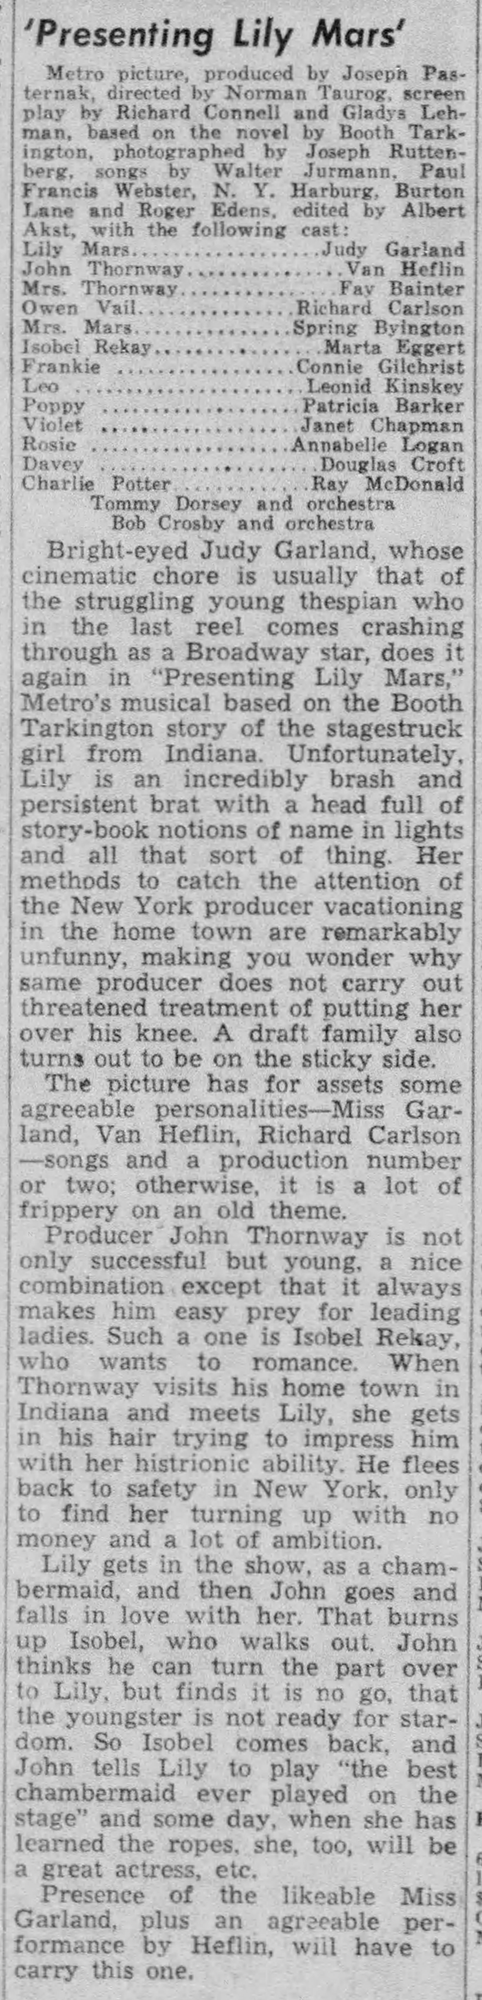 July-24,-1943-NEGATIVE-REVIEW-The_Austin_American-(TX)